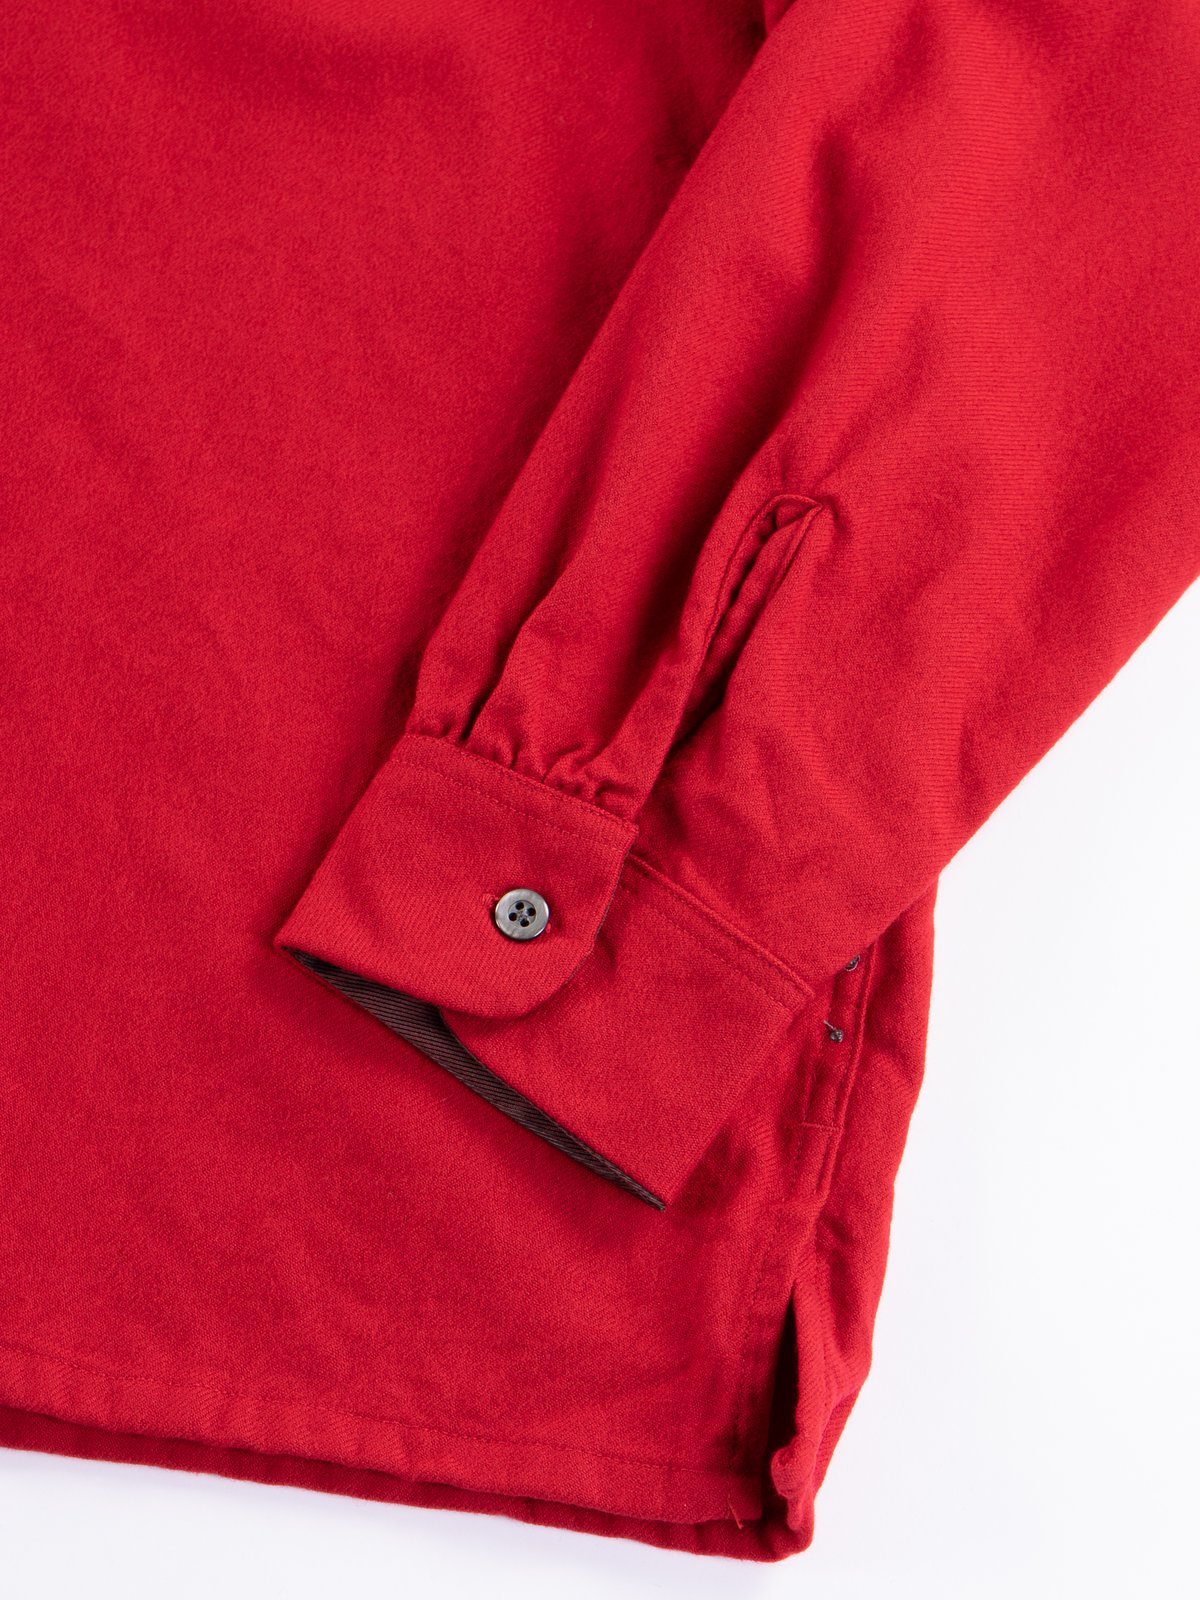 Red Worsted Wool Flannel Classic Shirt - Image 4